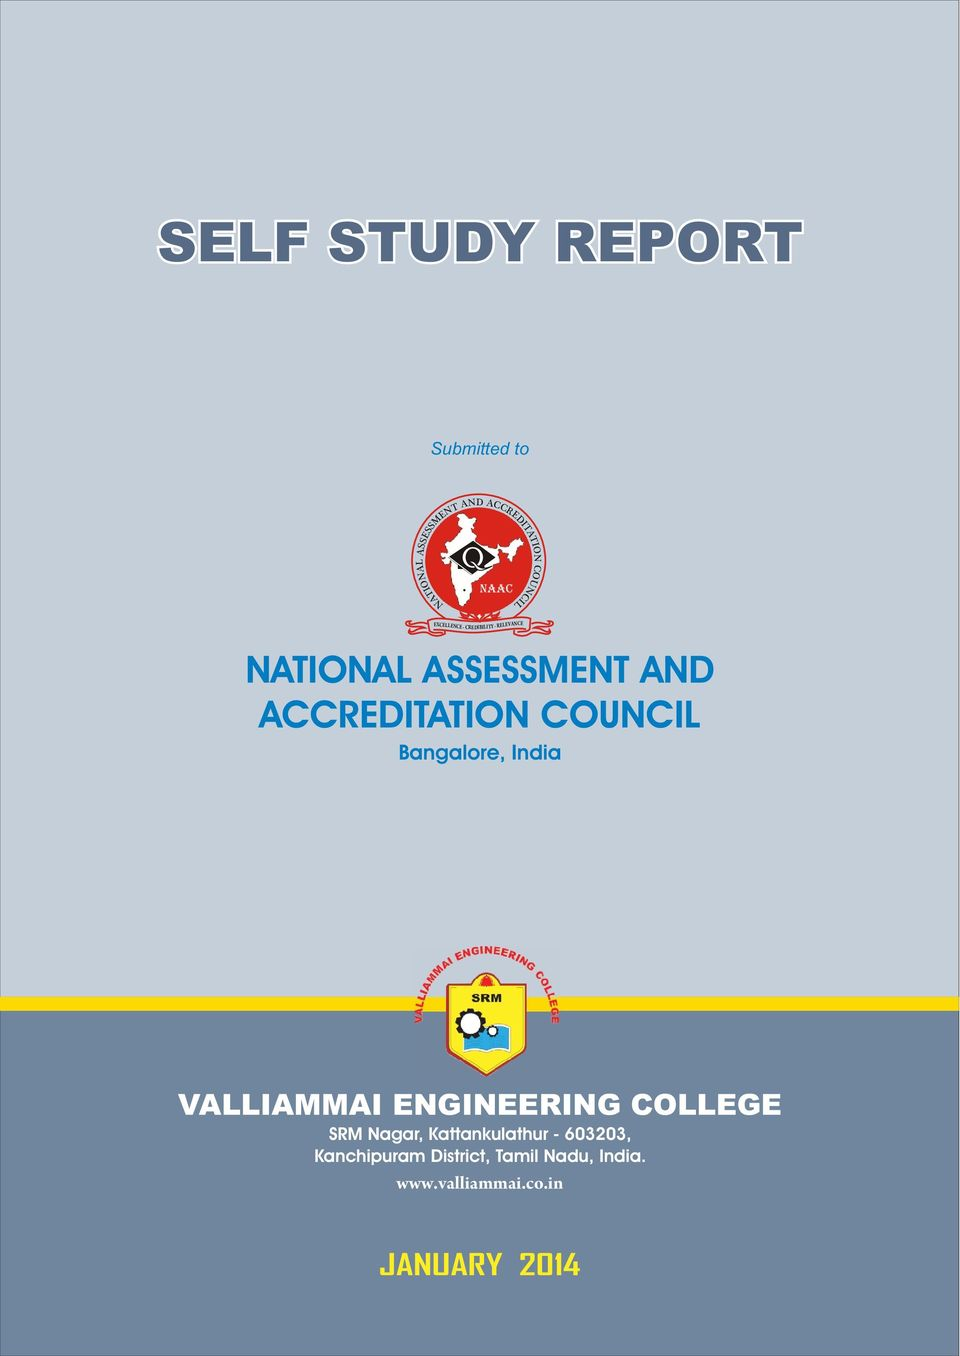 National assessment and accreditation council bangalore india pdf bangalore india il i ty vance valliammai engineering college srm nagar fandeluxe Gallery